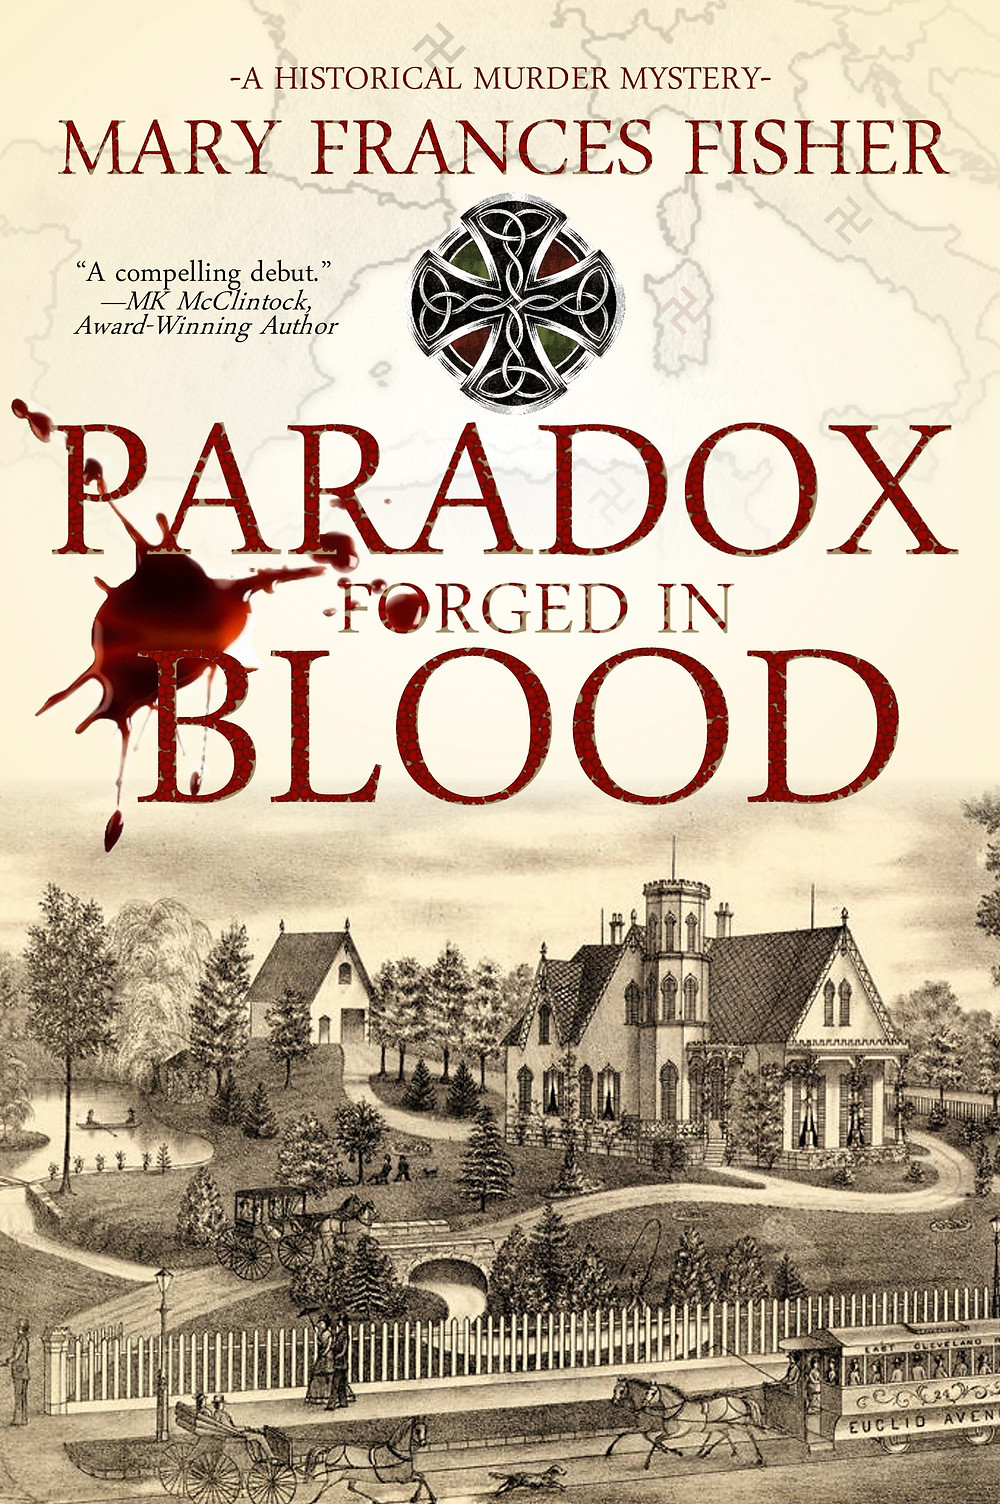 PARADOX FORGED IN BLOOD by Mary Frances Fisher - historical murder mystery